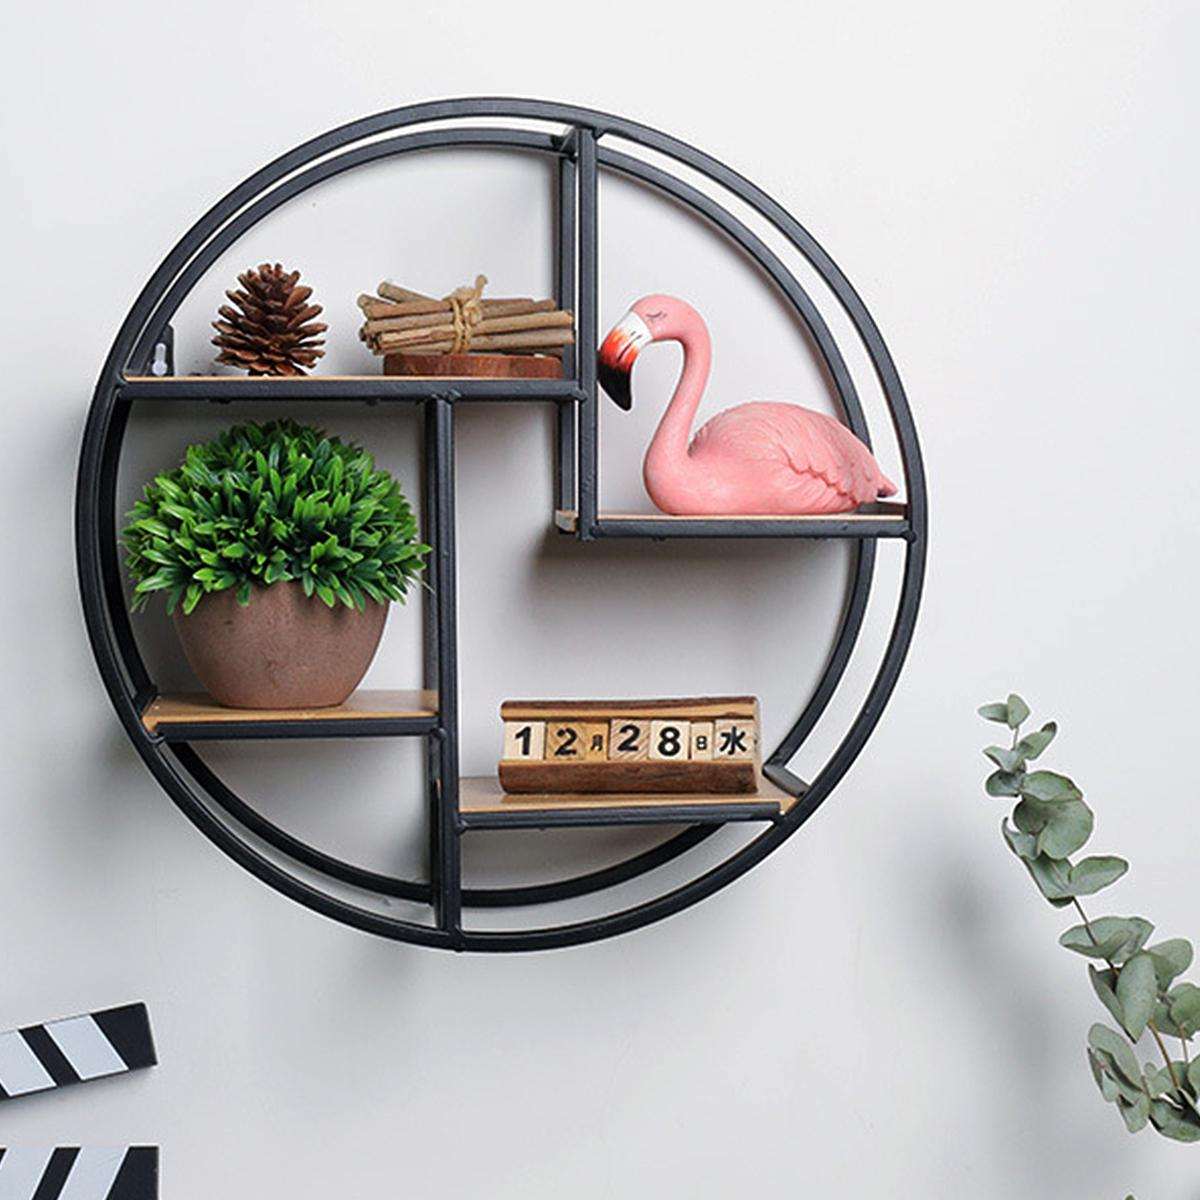 home bookcases shelving best floating shelves lazada tiers retro round wood iron craft wall bookshelf rack storage industrial style diy built desk and bookshelves secret door lock